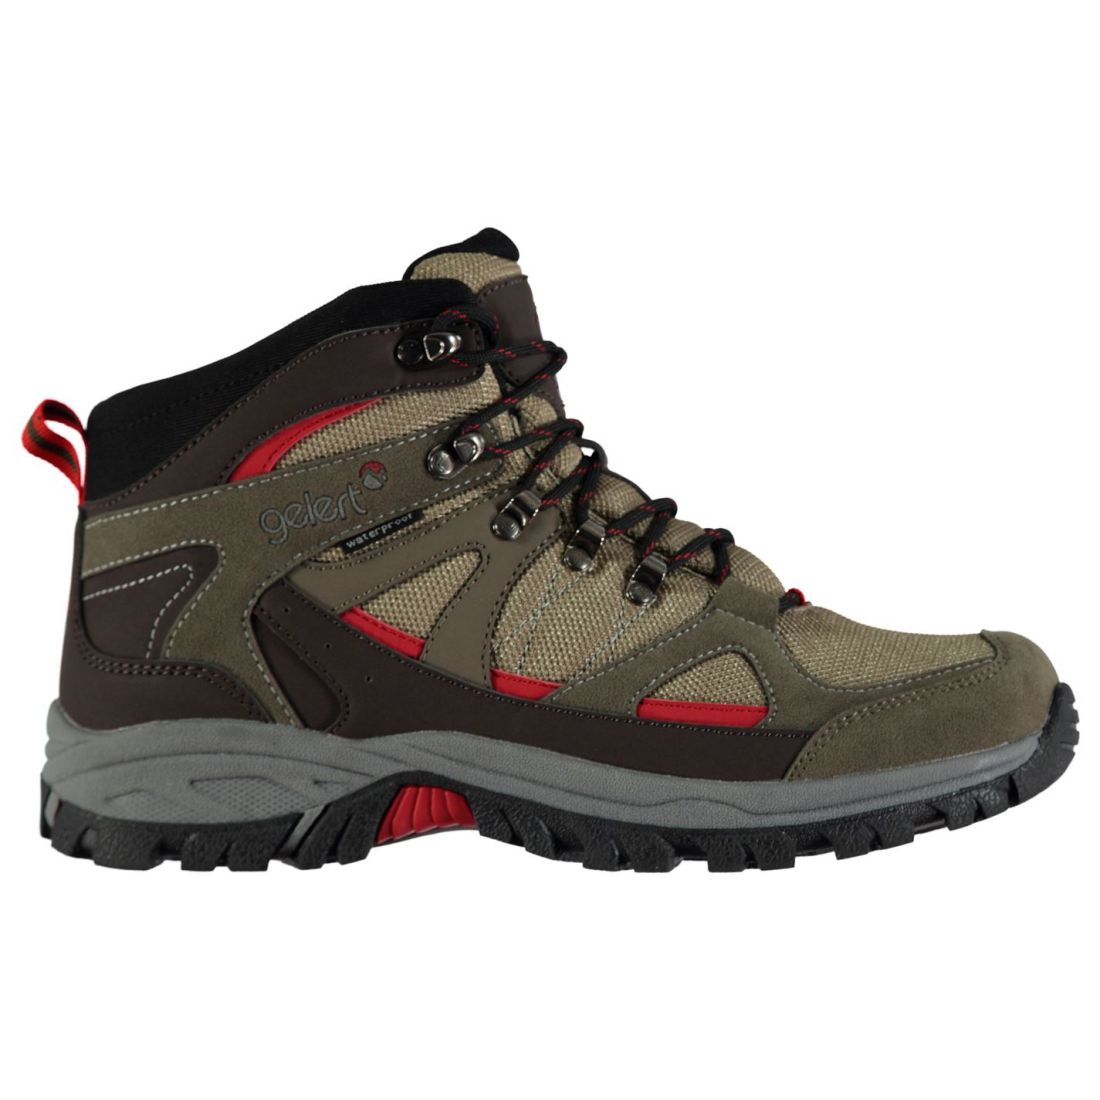 bd2f45582379a1 Image is loading Gelert-Mens-Snowden-Waterproof-Walking-Boots-Lace-Up-